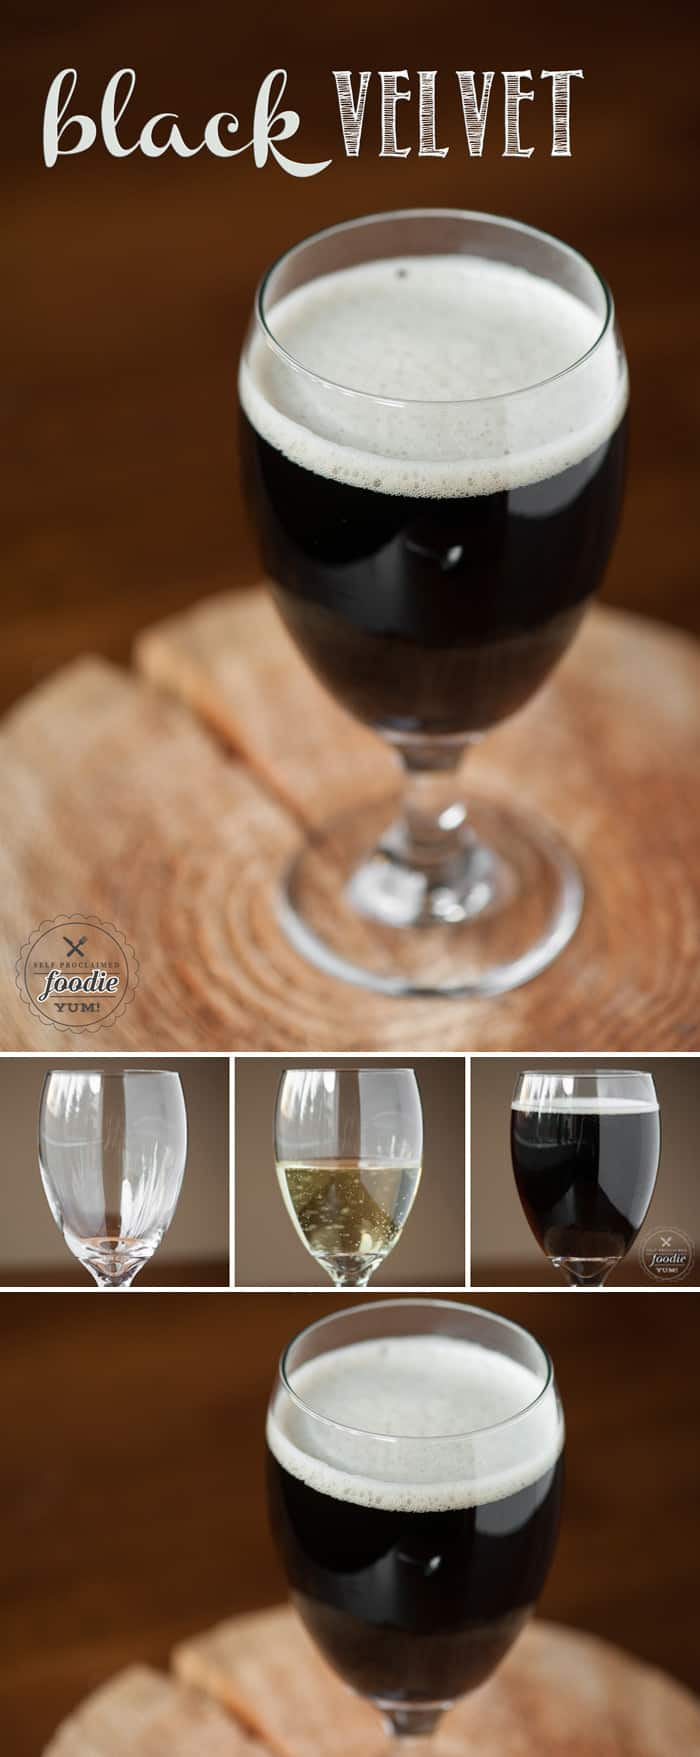 Looking for a tasty and easy to make cocktail that is perfect for any St. Patrick's Day celebration? Try a smooth Black Velvet, made with stout and champagne.